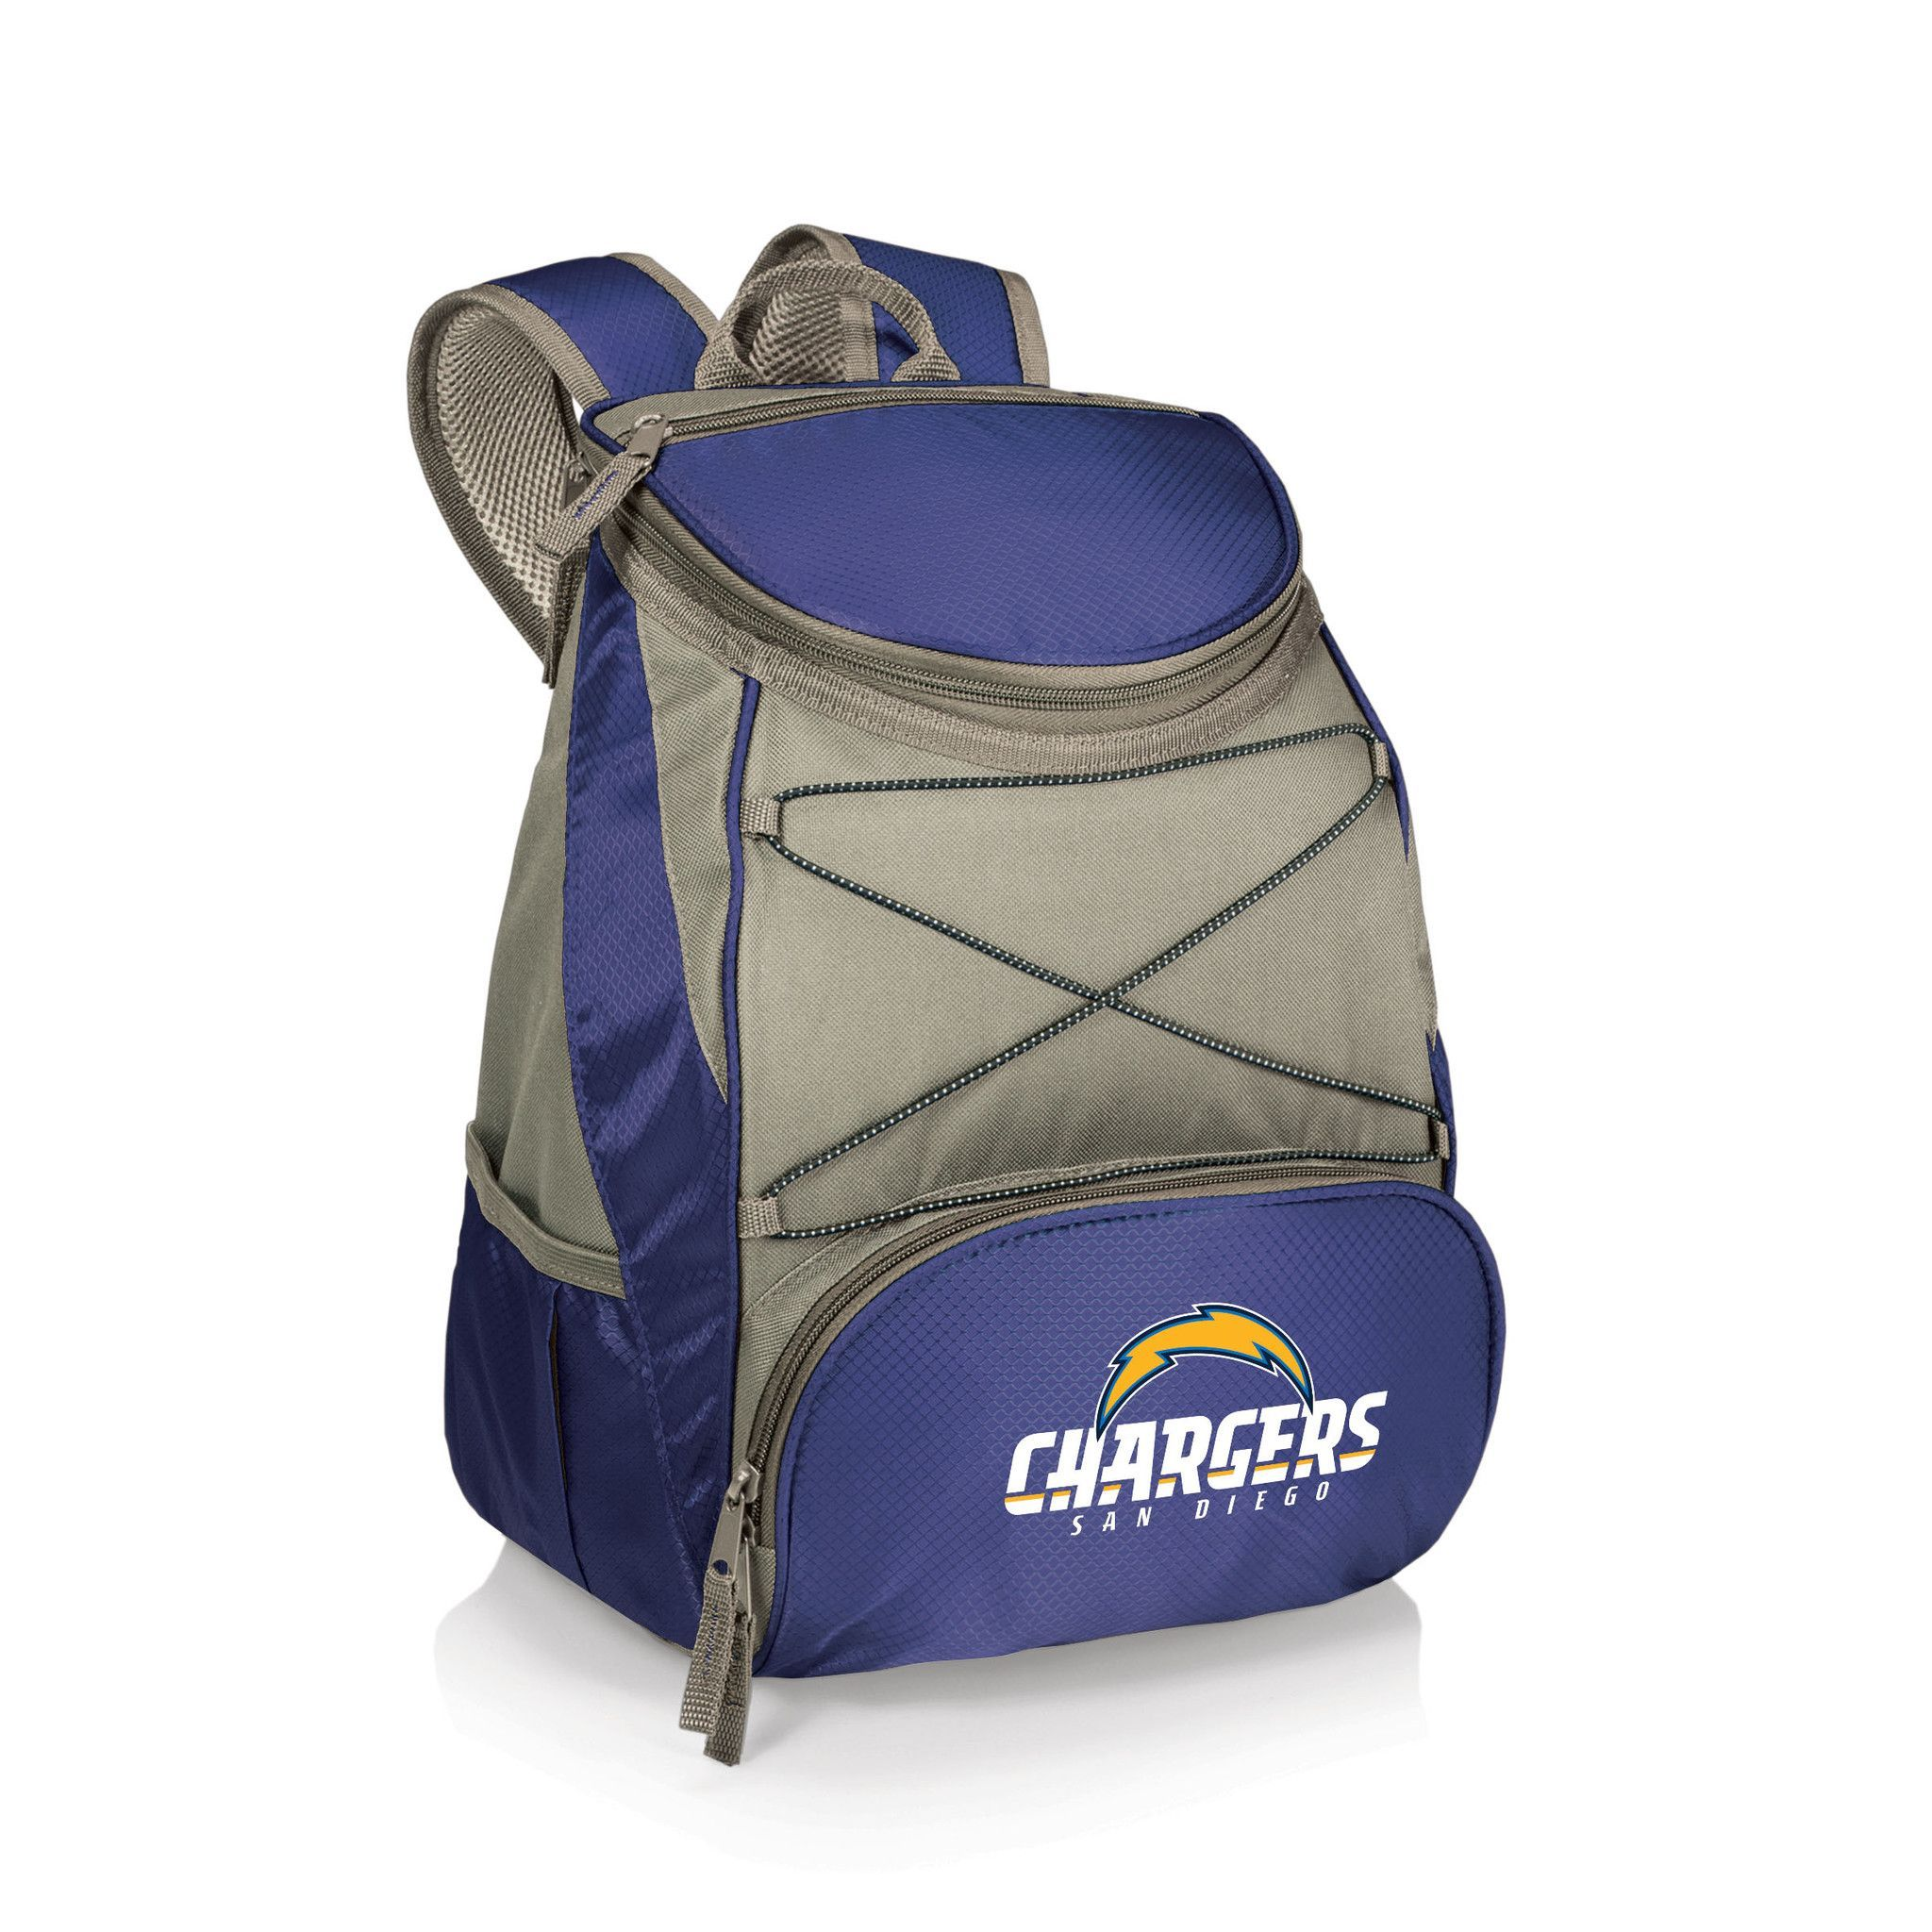 San Diego Chargers Backpack: San Diego Chargers Insulated Backpack